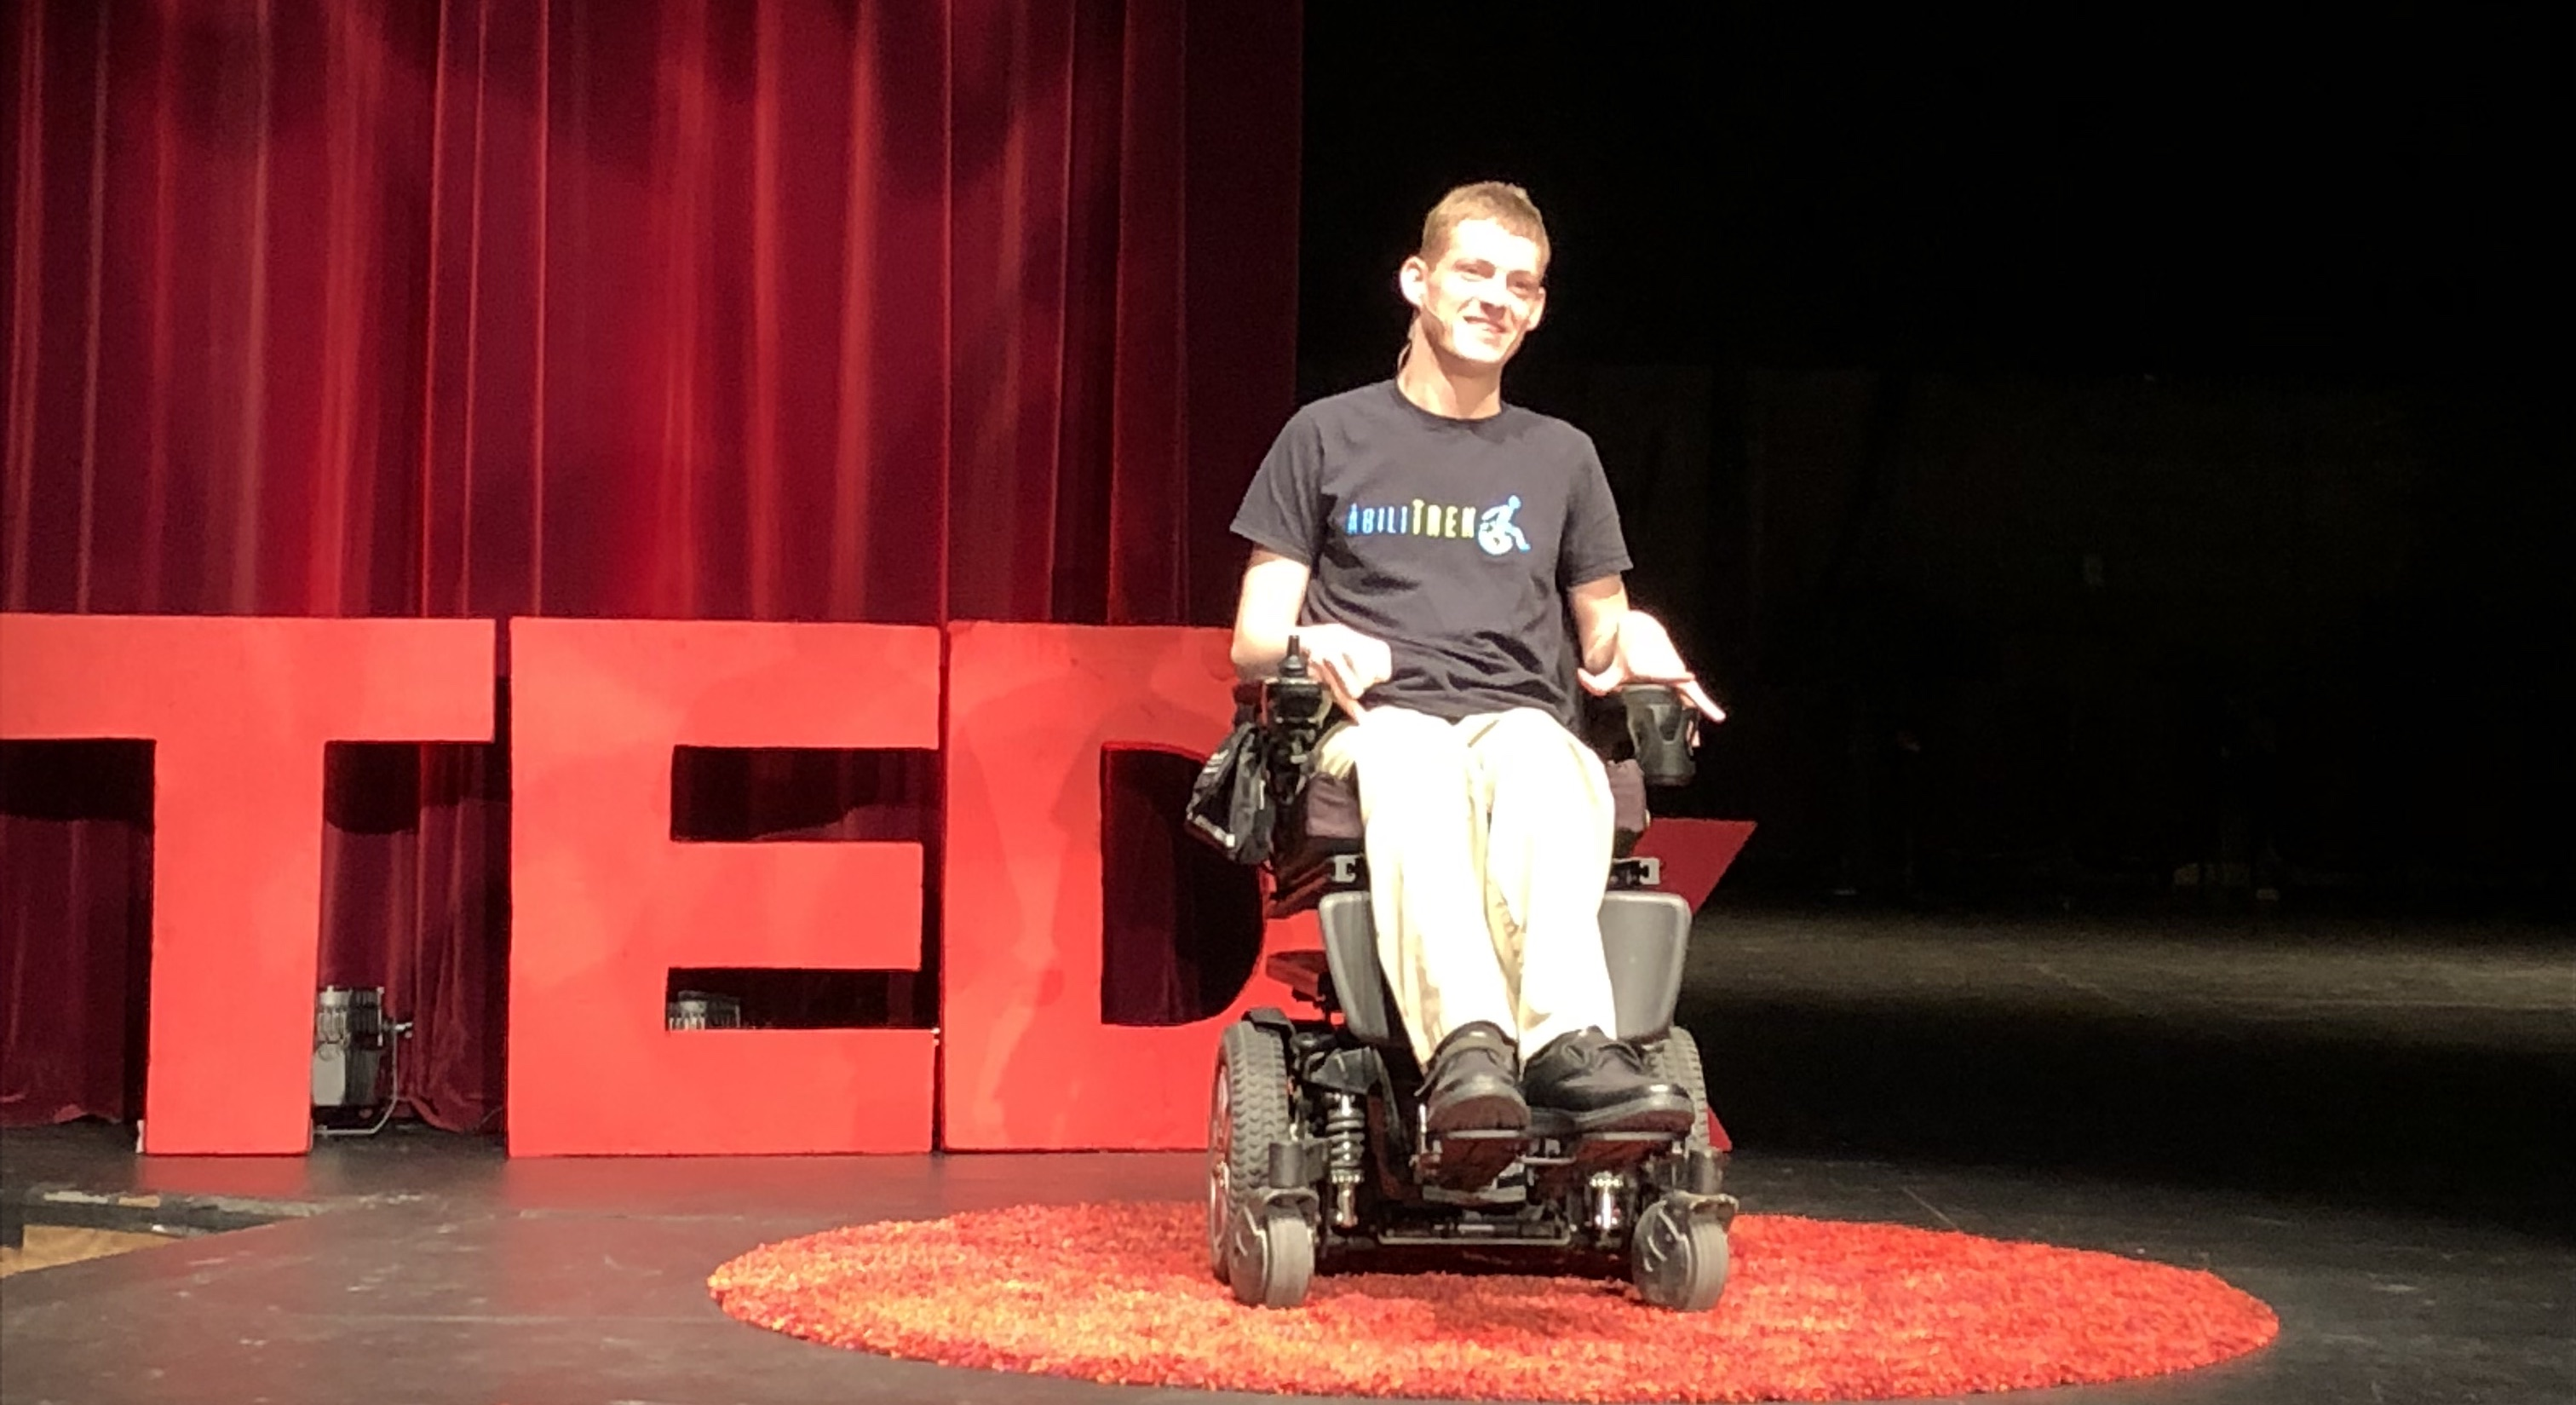 Daman sitting in his power wheelchair on the stage speaking at the 2018 TEDxWWU. There is a red TEDx behind him a red curtain behind the TEDx. He is wearing an AbiliTrek t-shirt (black shirt with neon blue and lime green lettering),  tan slacks, black shoes and a head-set mic.